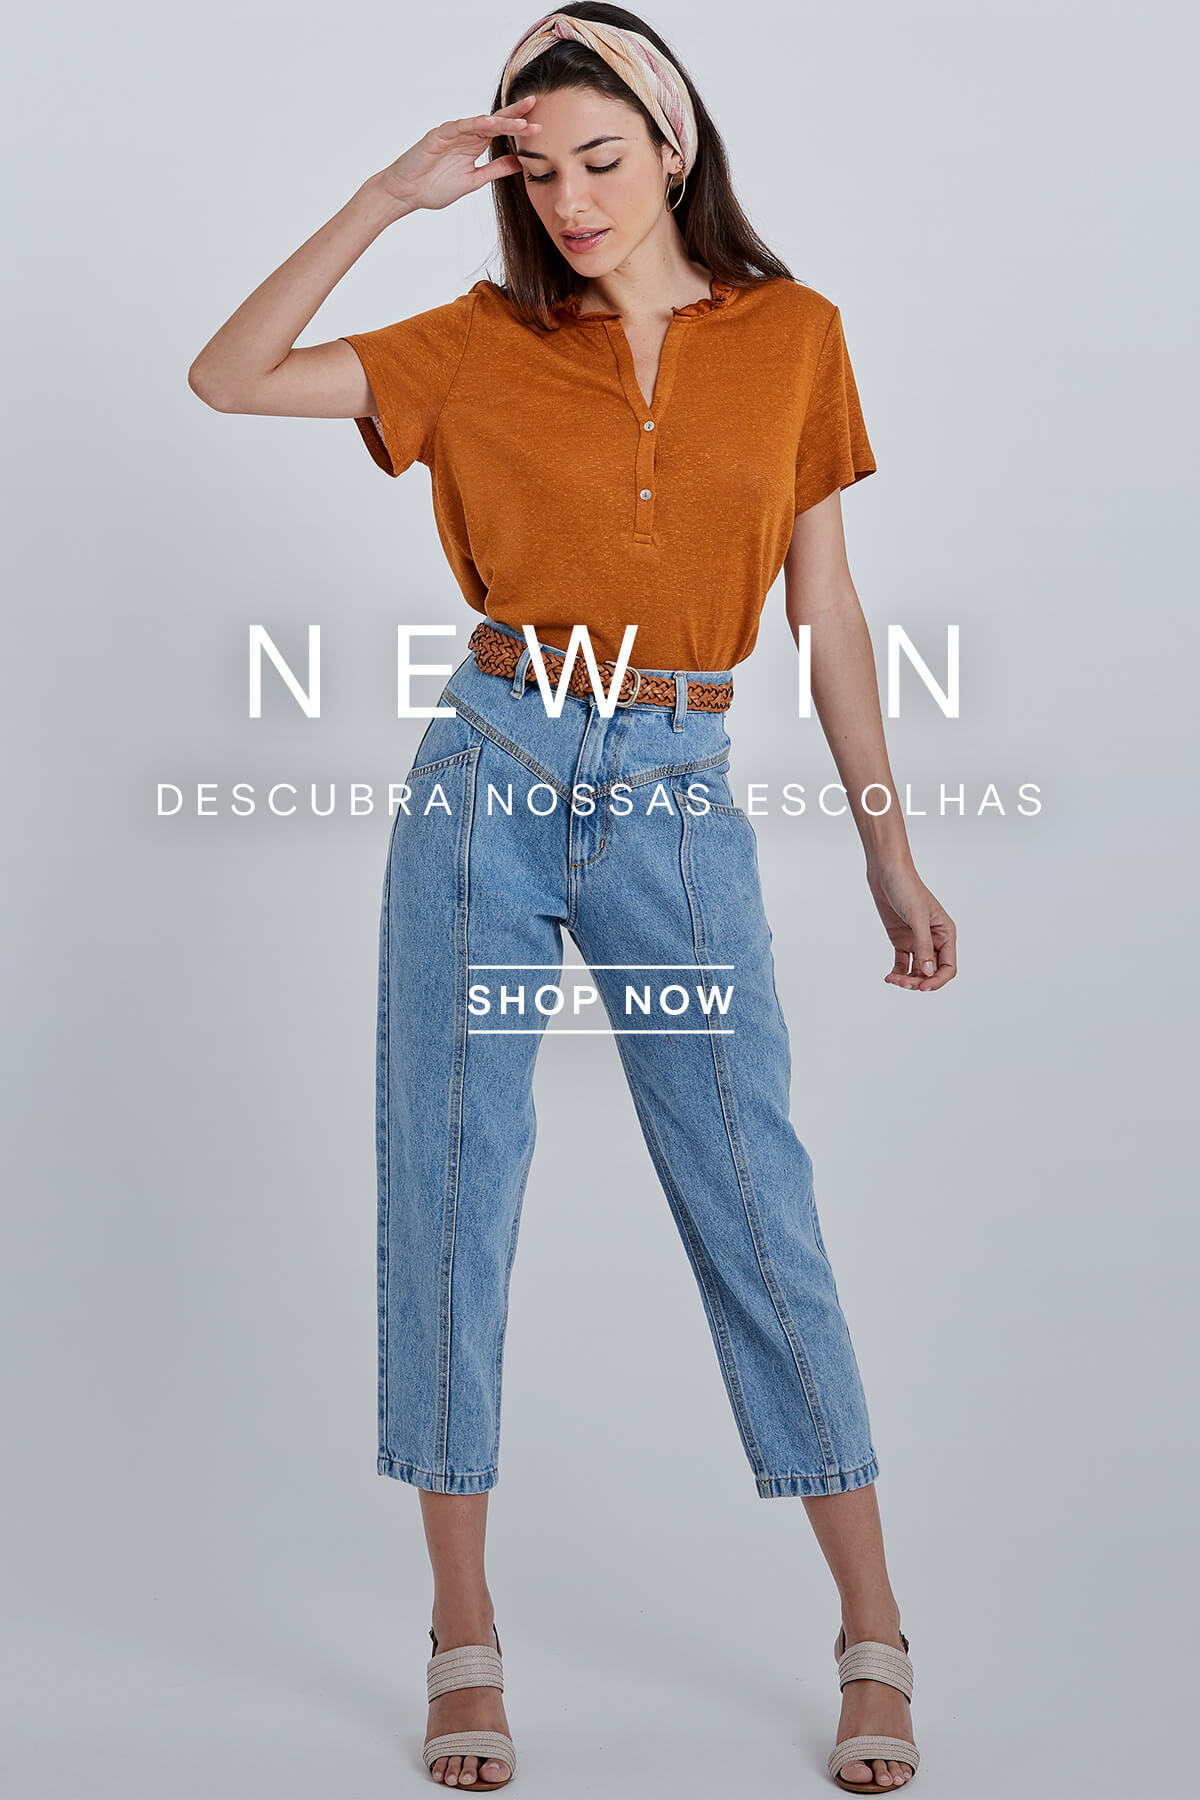 New in blusas